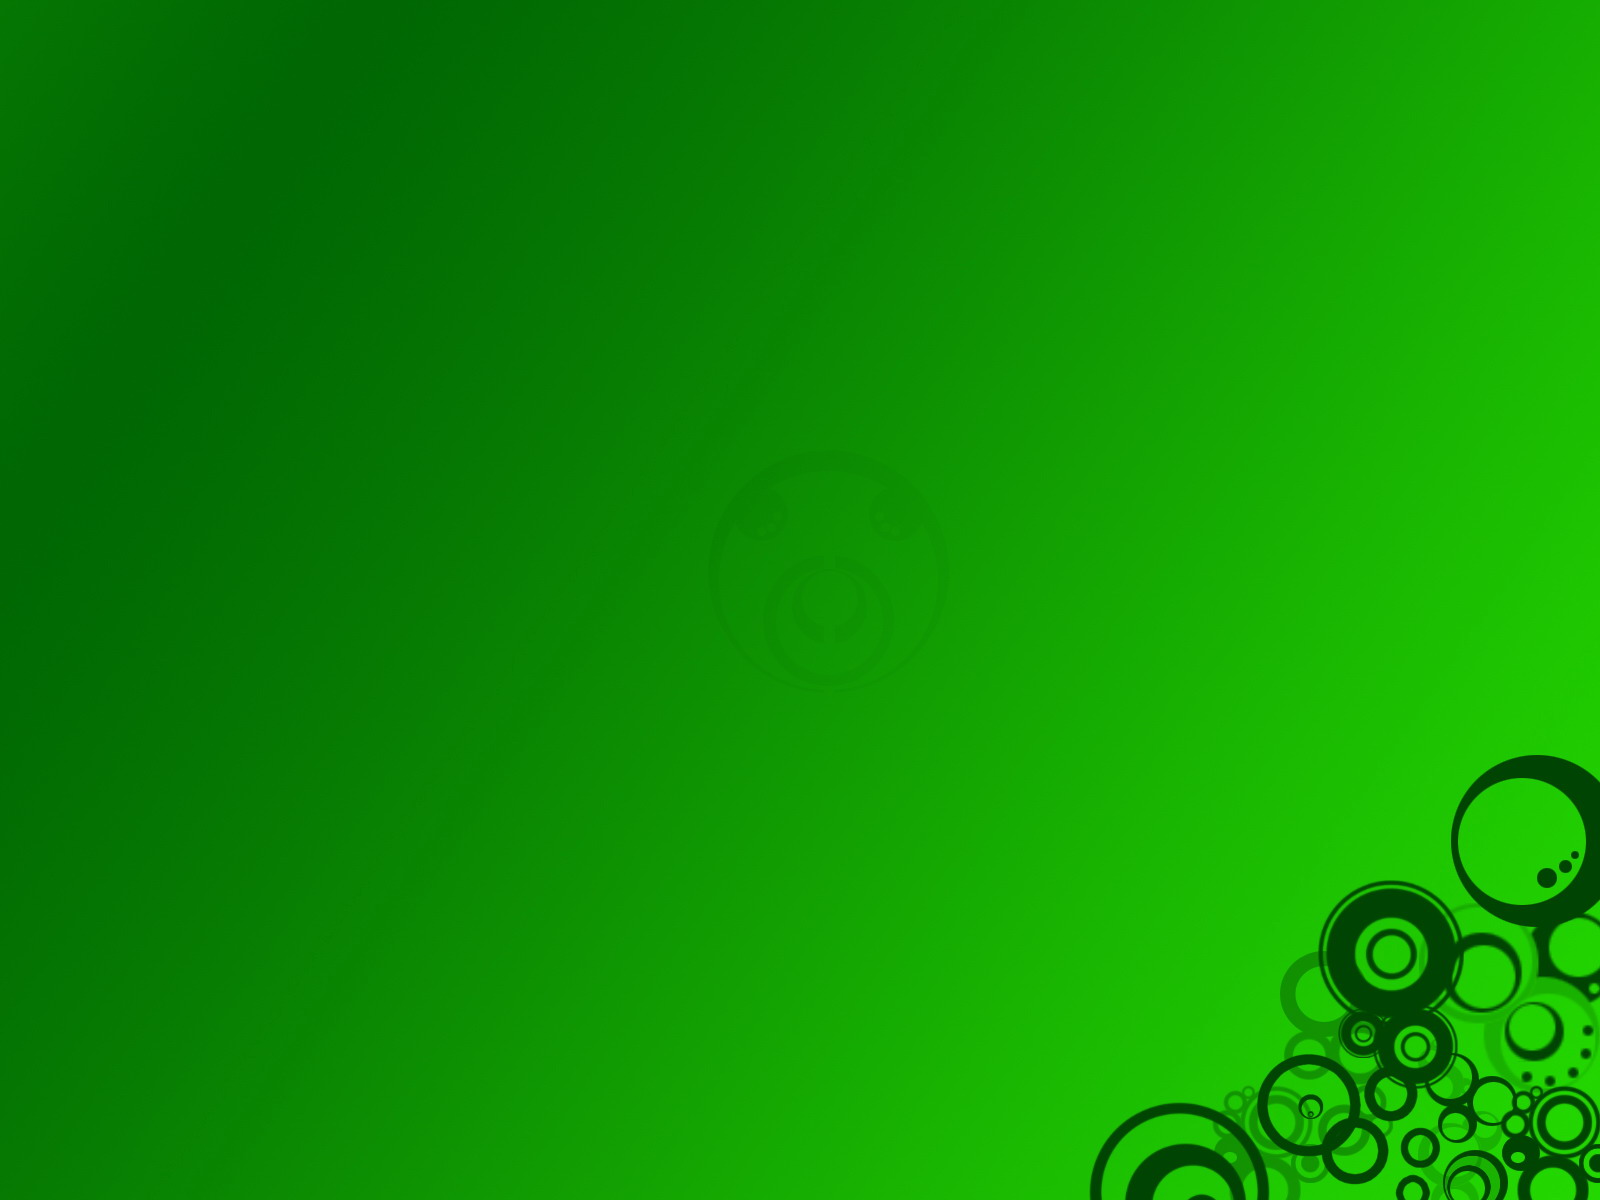 Green Wallpapers HD  PixelsTalk Green Abstract Wallpaper HD  HD Images New 1600x1200